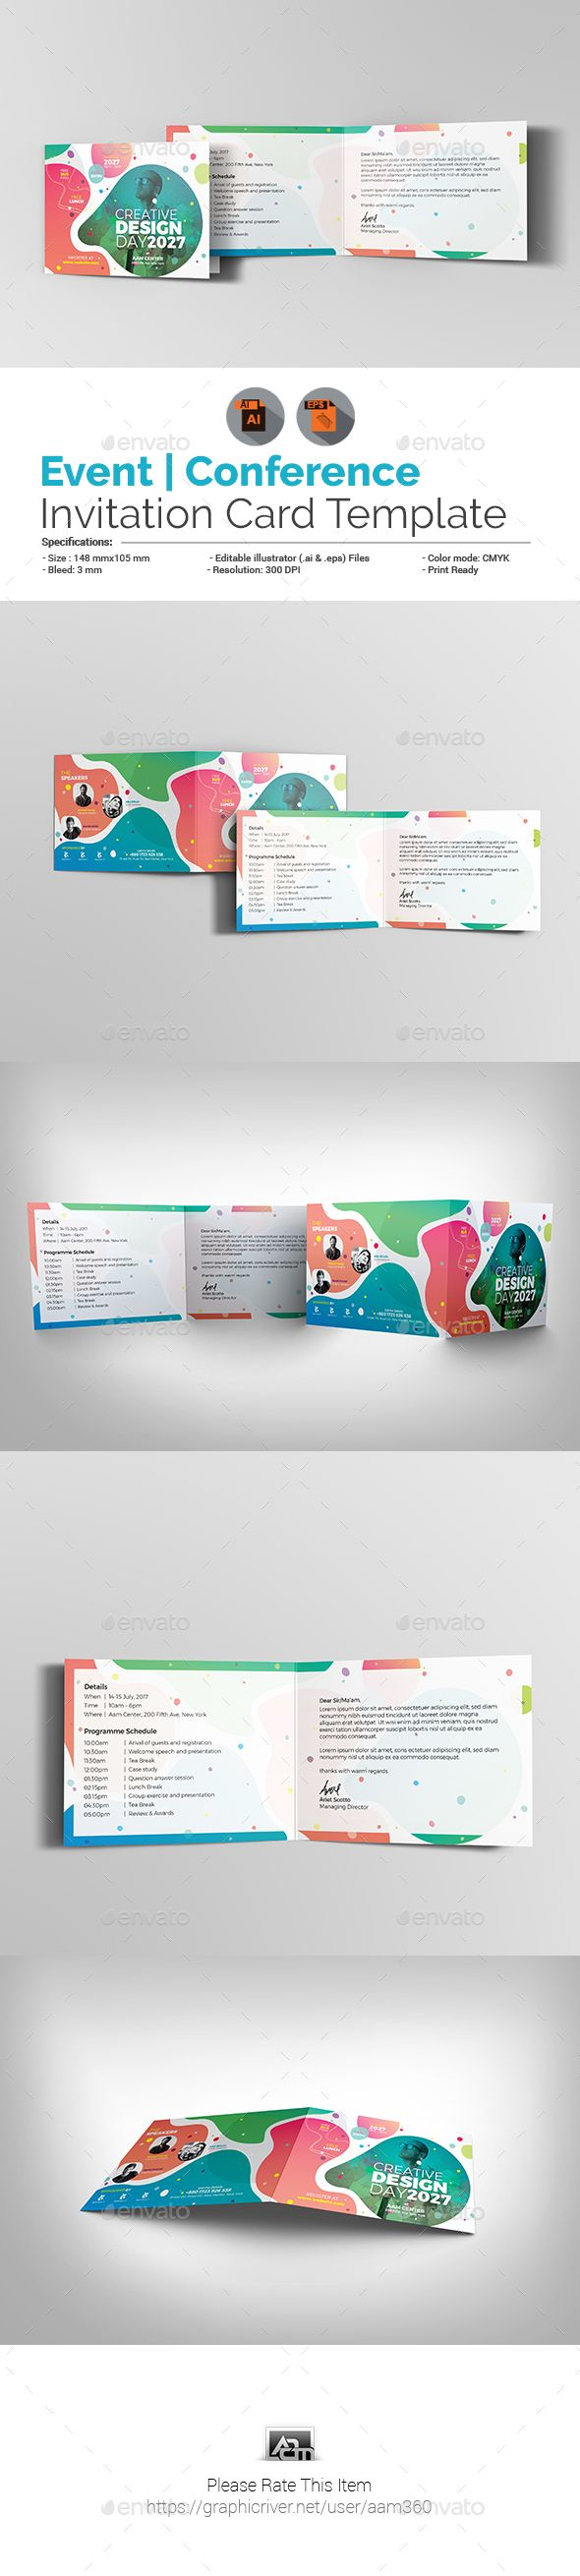 Event Conference Invitation Card Template Vector Eps Ai